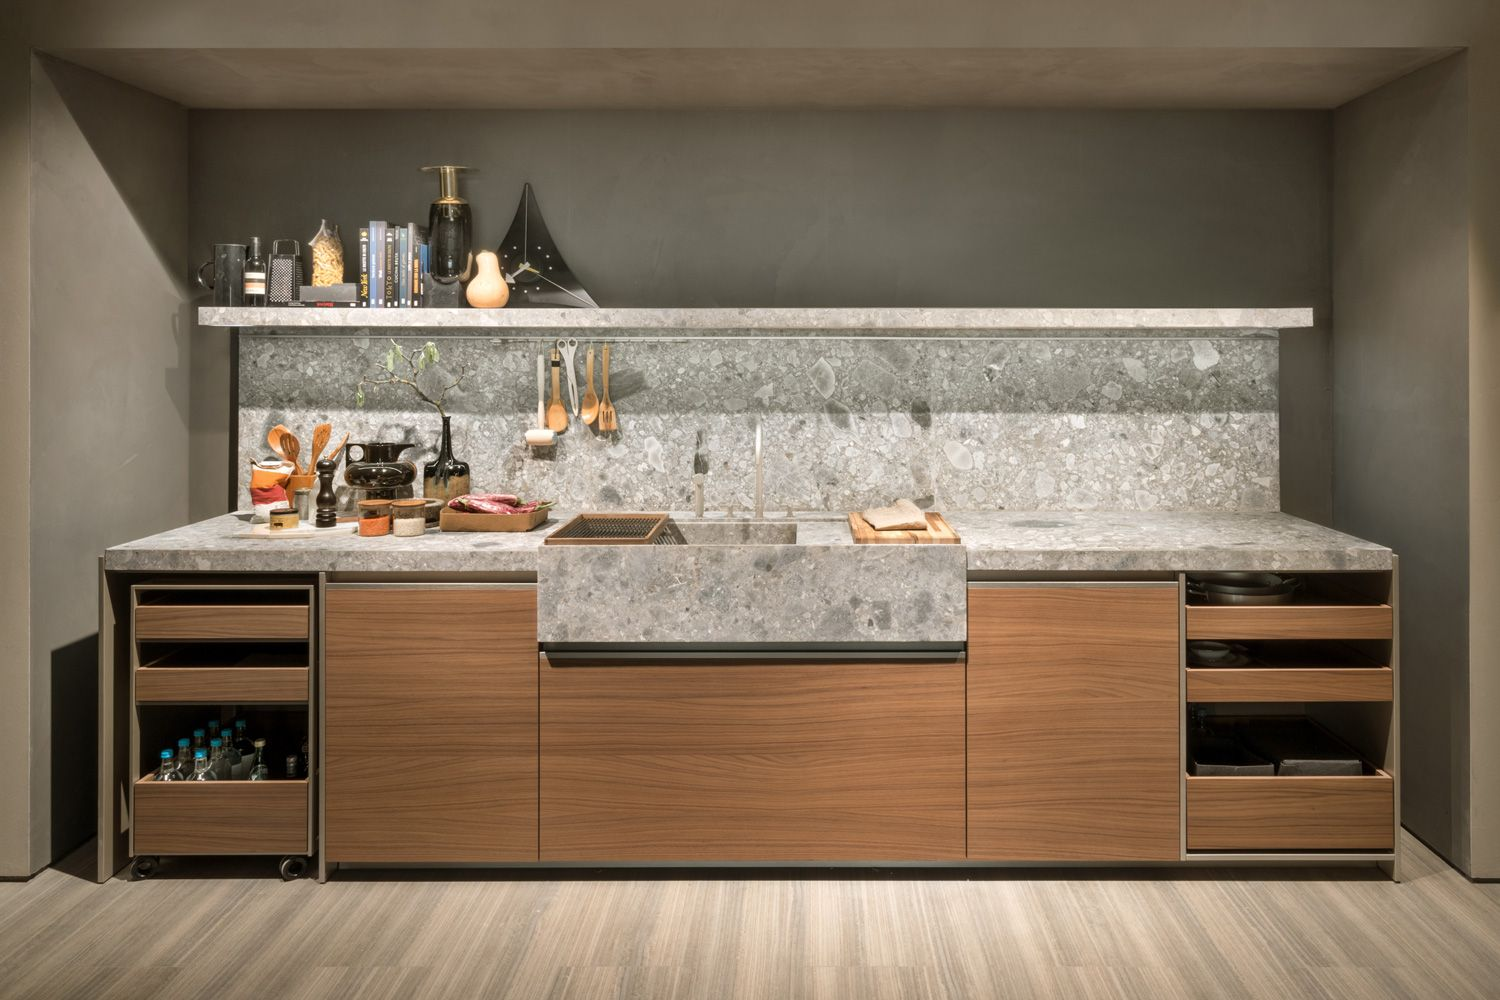 Appliances As Art And Other Kitchen Trends From Eurocucina 2016  # Muebles Y Cocinas Daxa